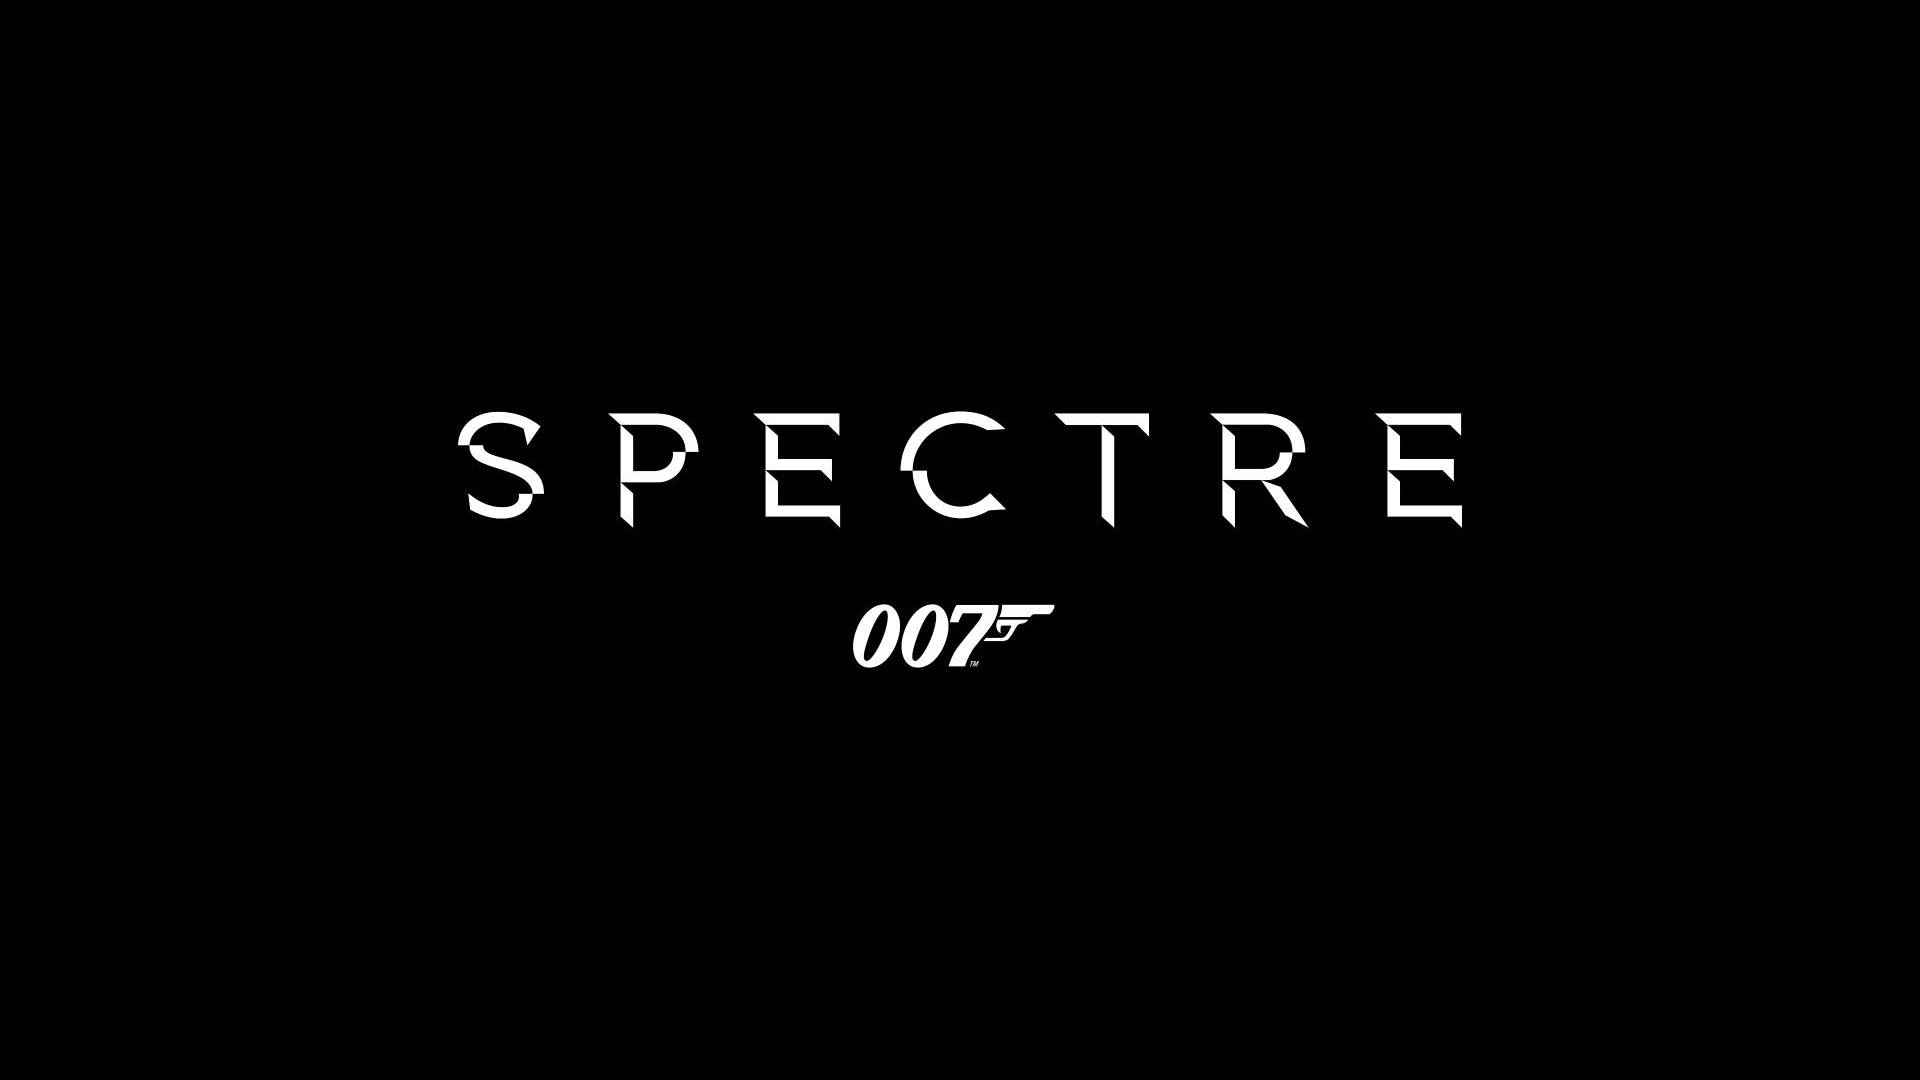 Bond 24 Will Be Spectre – A Reaction